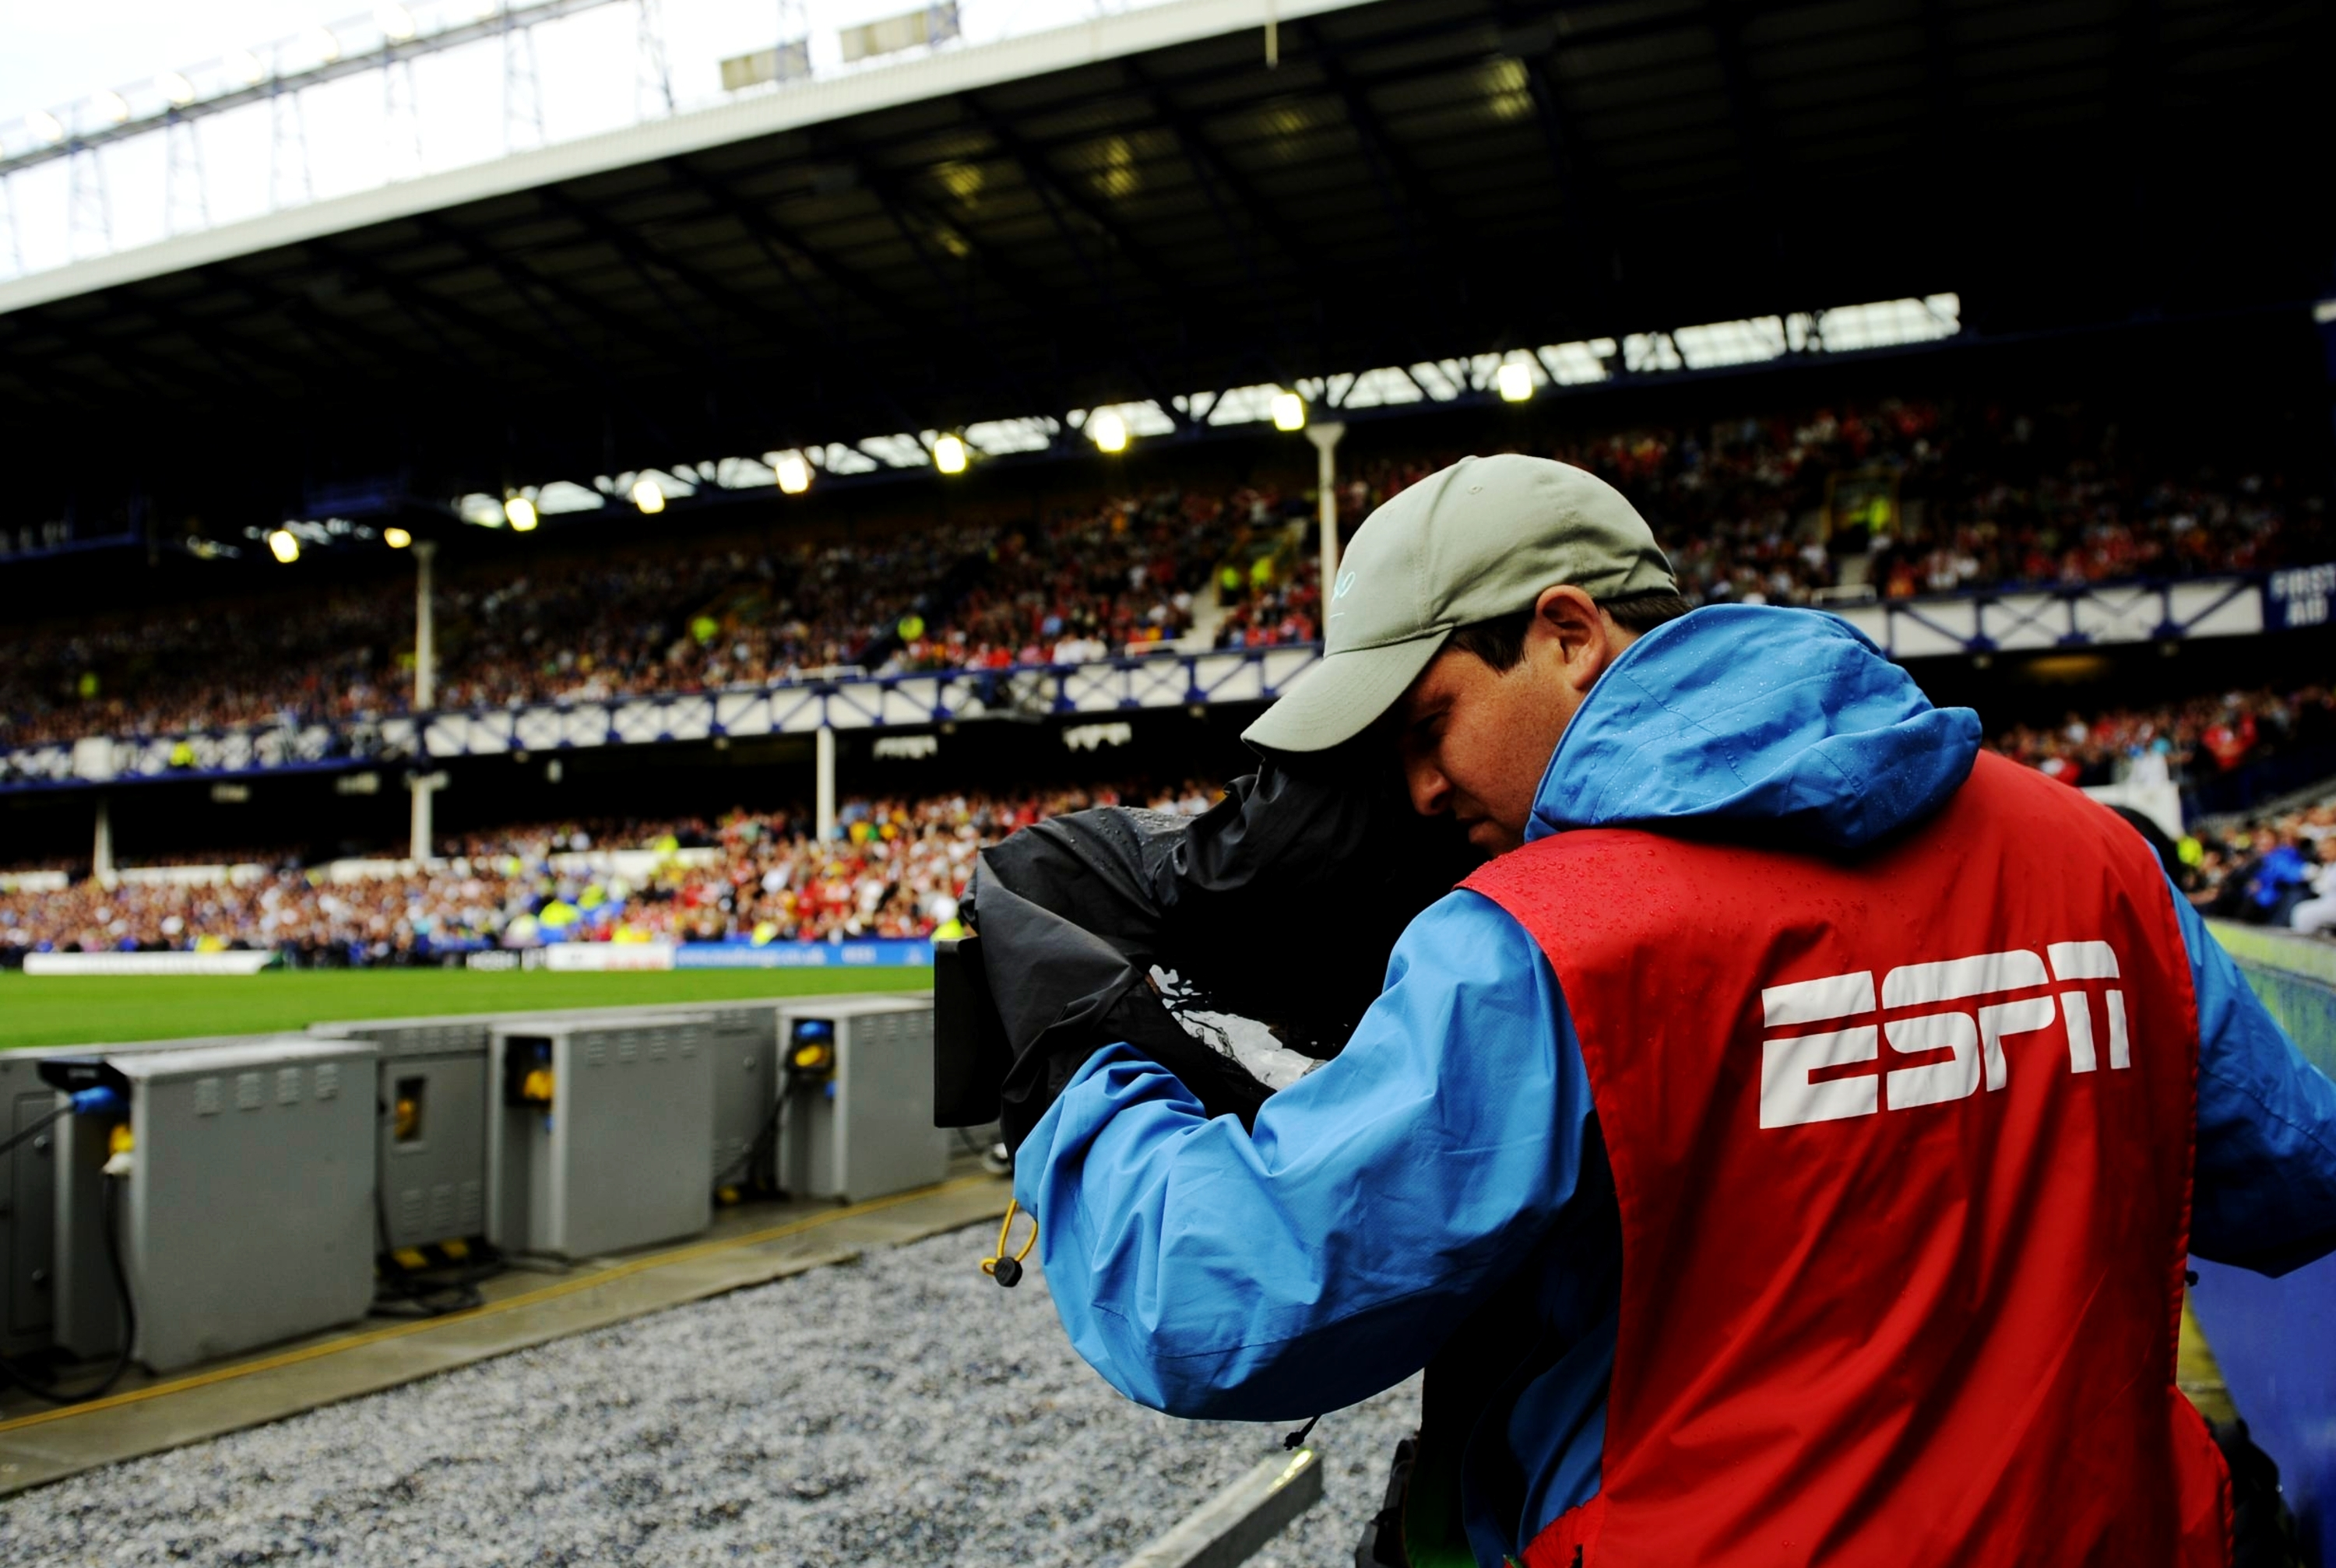 An ESPN cameraman covers the action during the Barclays Premier League match between Everton and Arsenal at Goodison Park on August 15, 2009 in Liverpool, England.